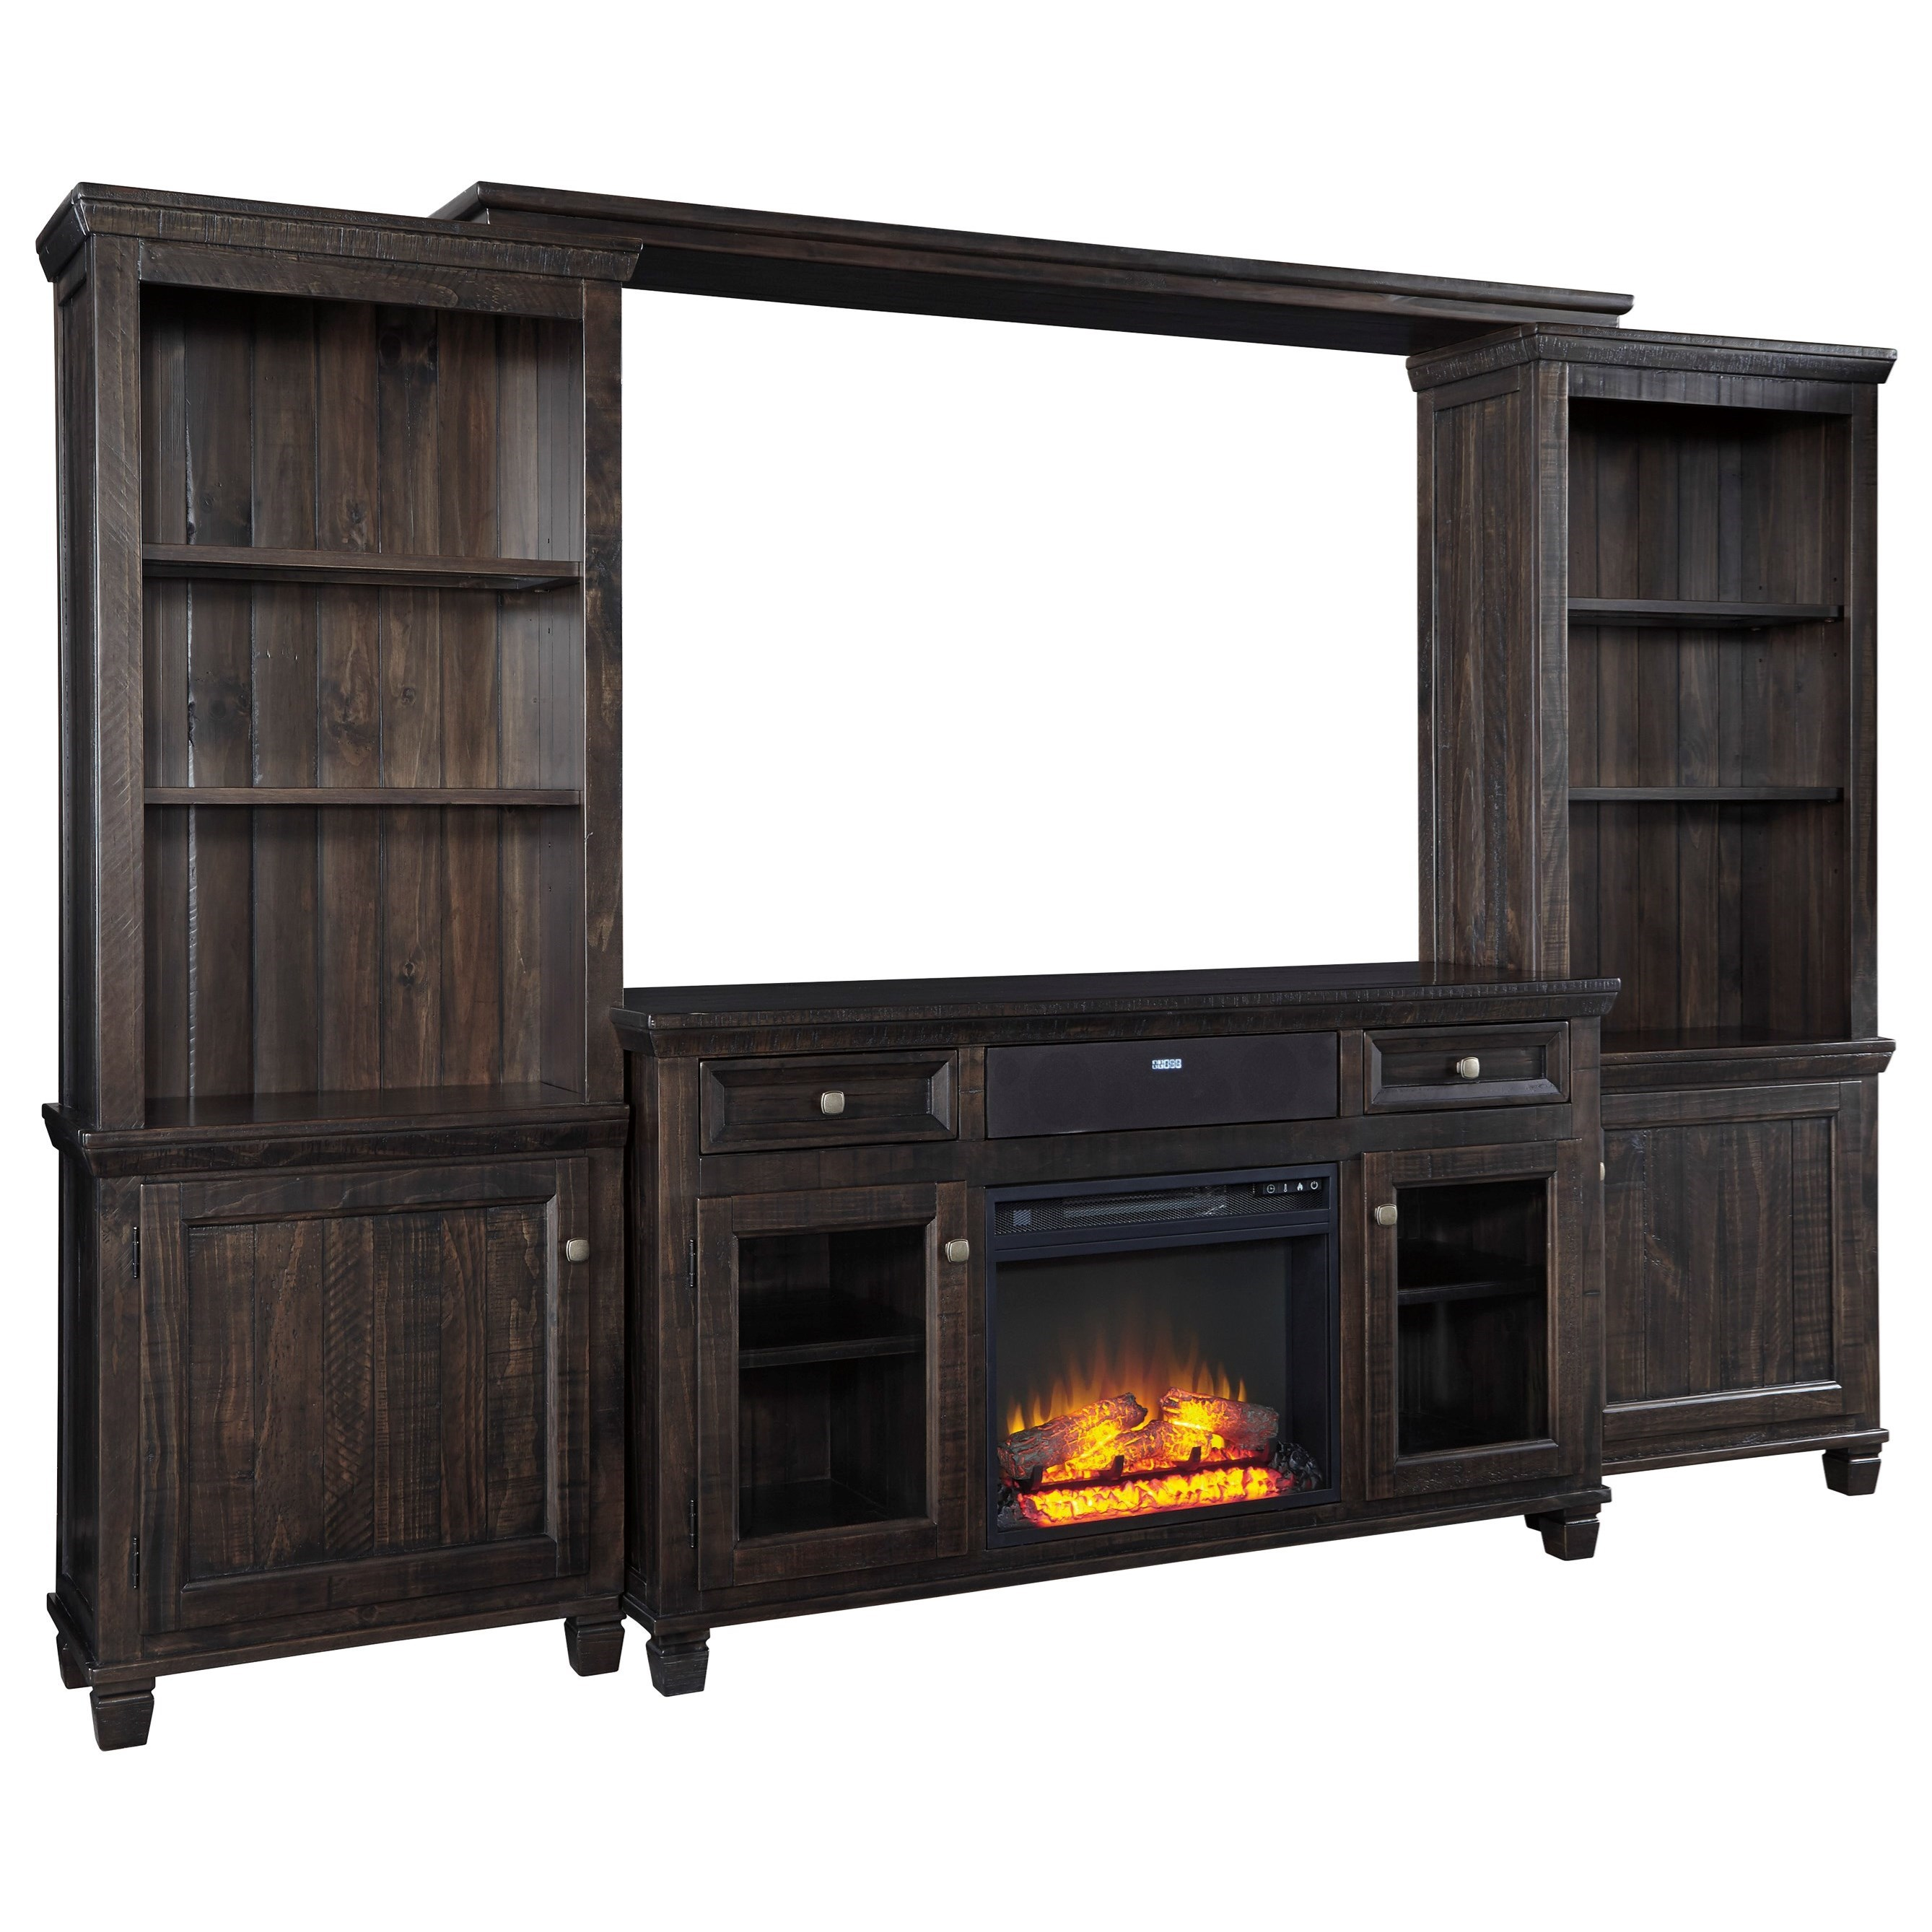 Signature Design by Ashley Townser Entertainment Center w/ Fireplace & Speaker - Item Number: W636-33+30+35+34+W100-01+31